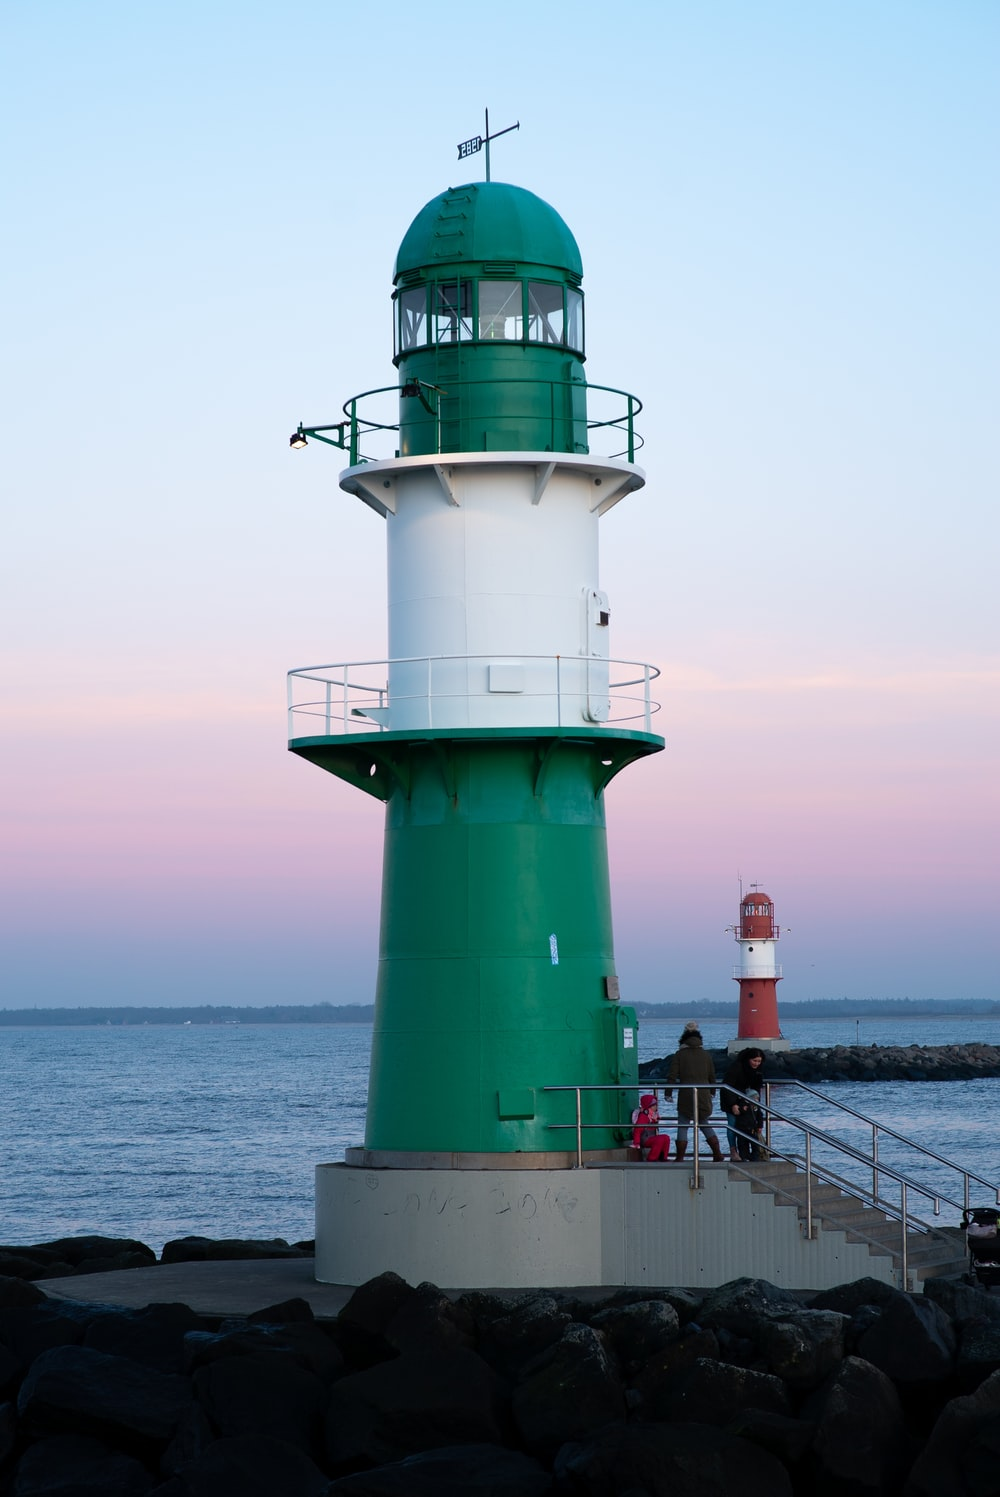 white and green lighthouse on sea during daytime